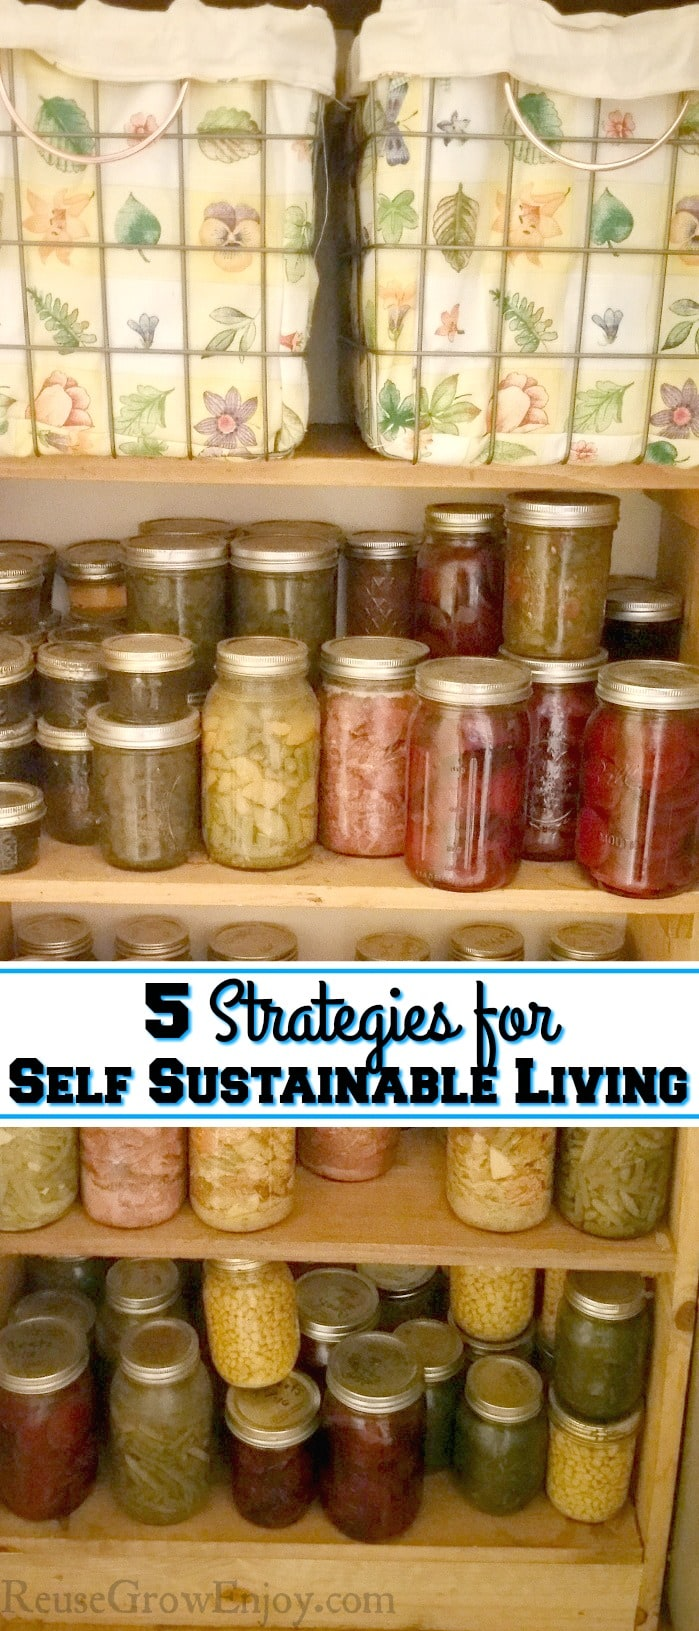 "Wood shelves filled with home canned foods with a text overlay that says ""5 Strategies For Self Sustainable Living""."